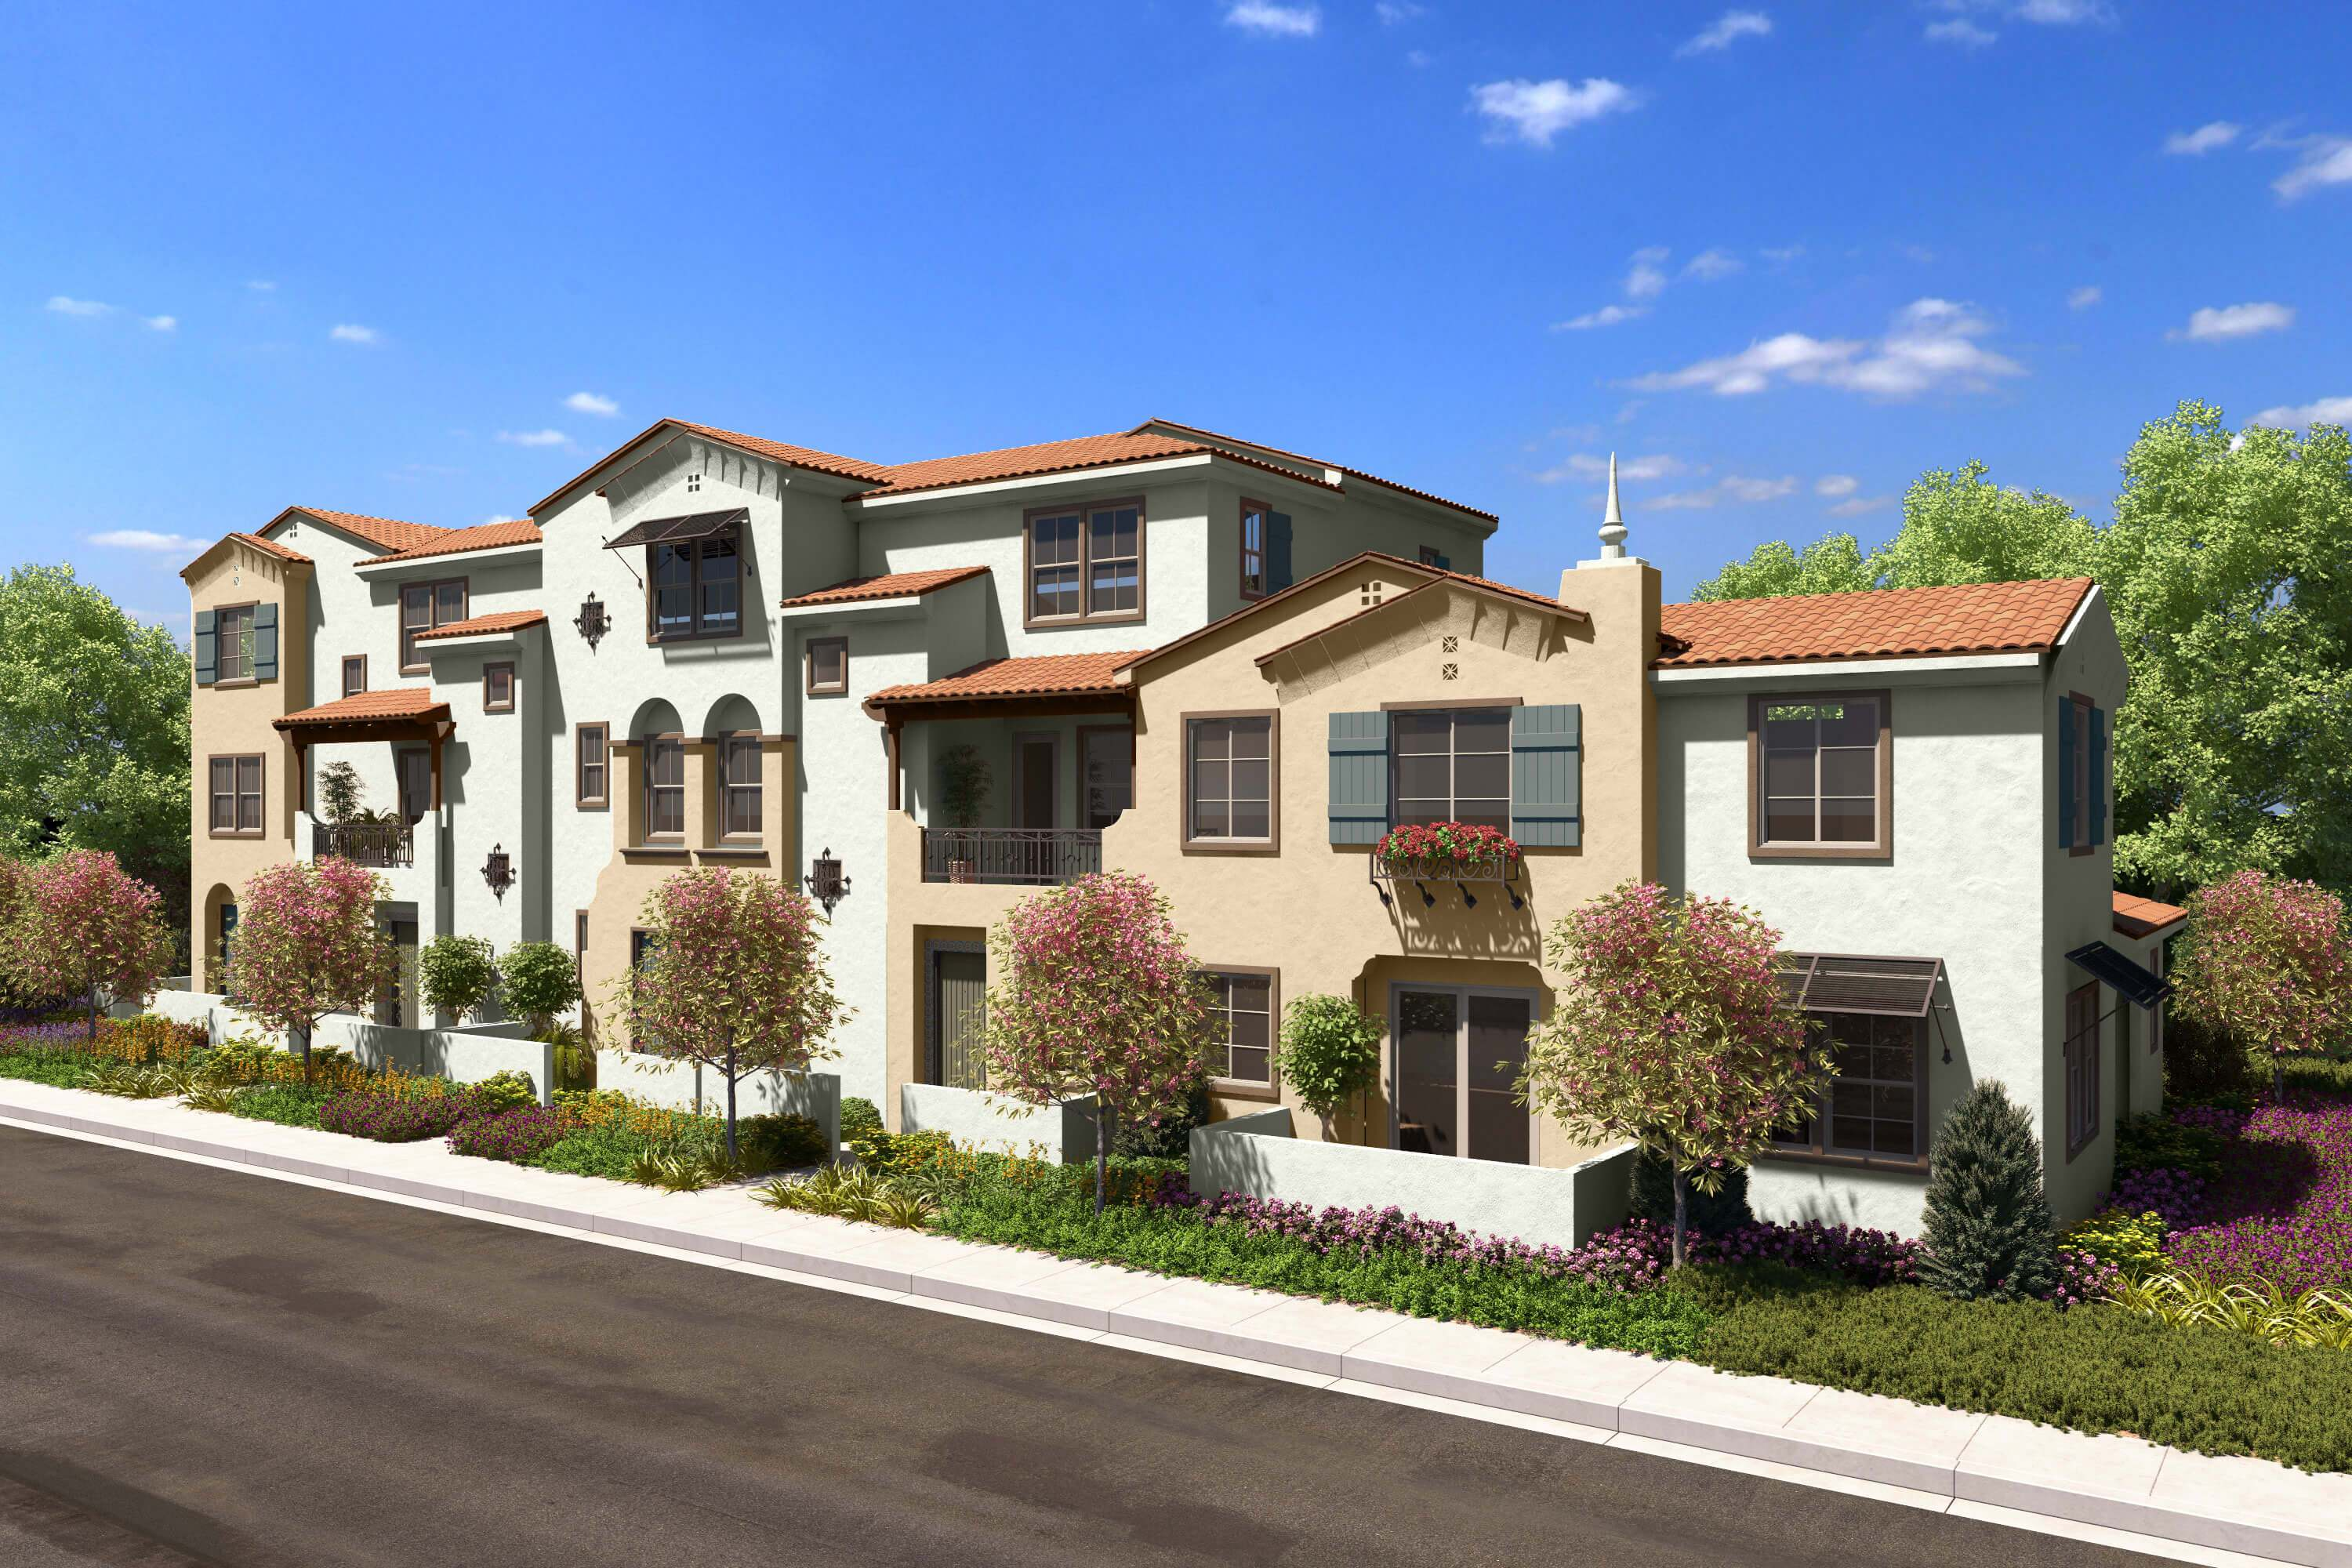 Multi Family for Sale at Citrus Pointe At The Orchards - Residence 5x 192 Sultana Avenue Upland, California 91786 United States